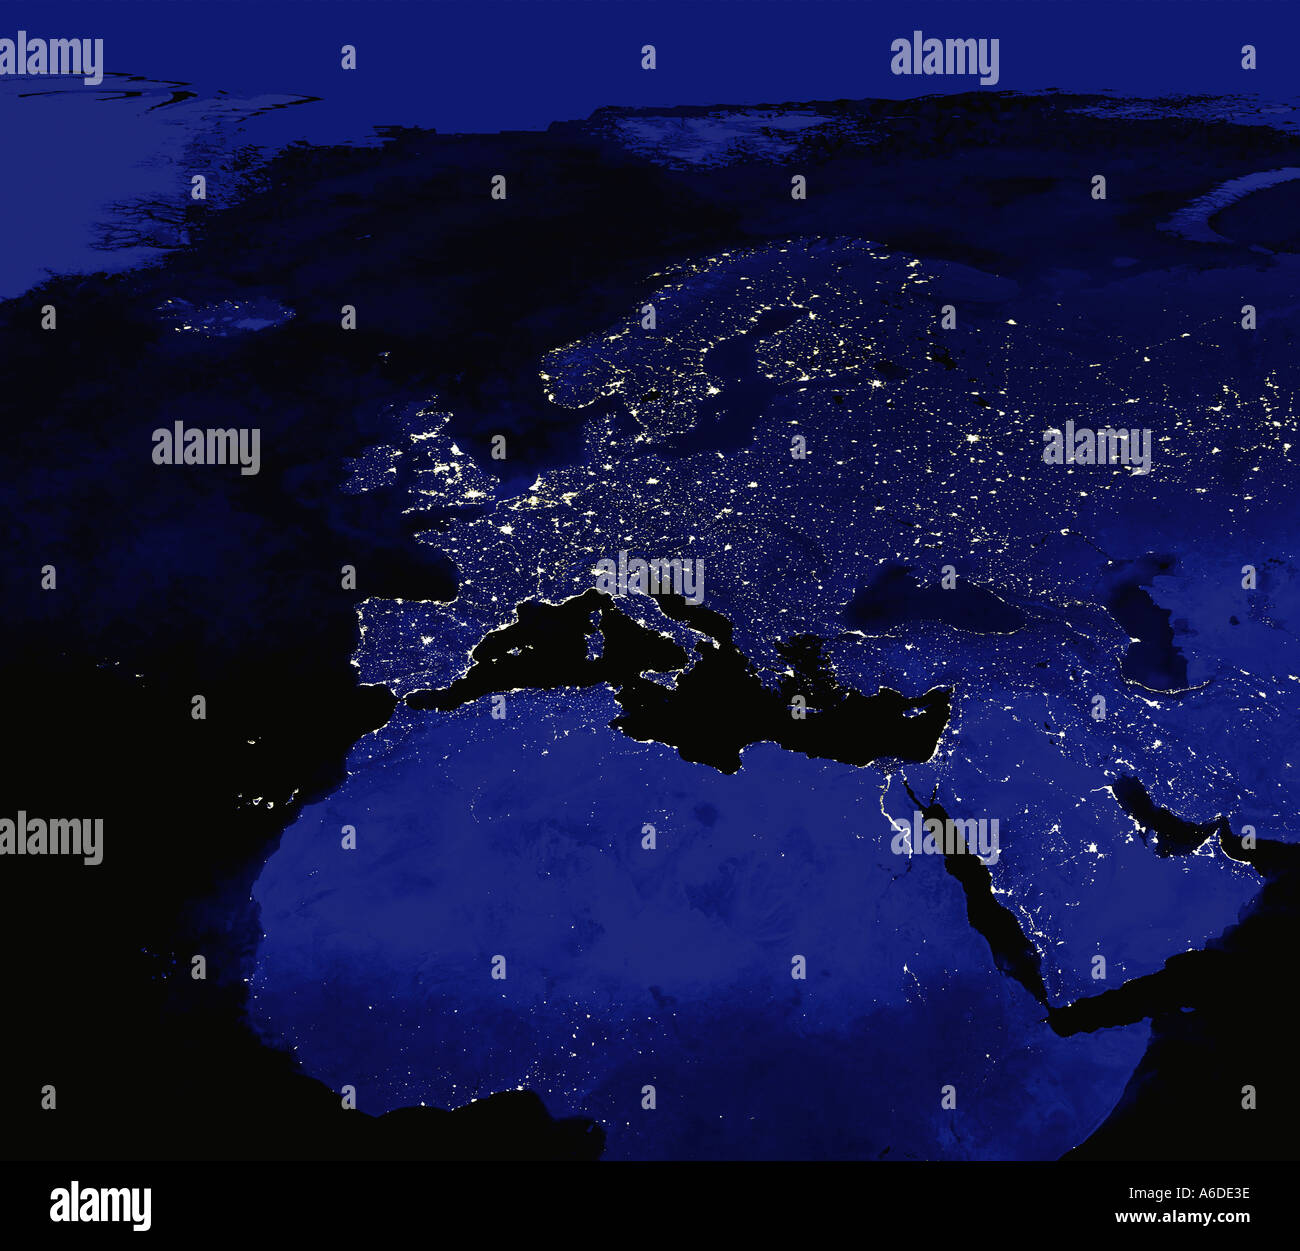 Satellite Image Of Europe At Night City Lights Visible